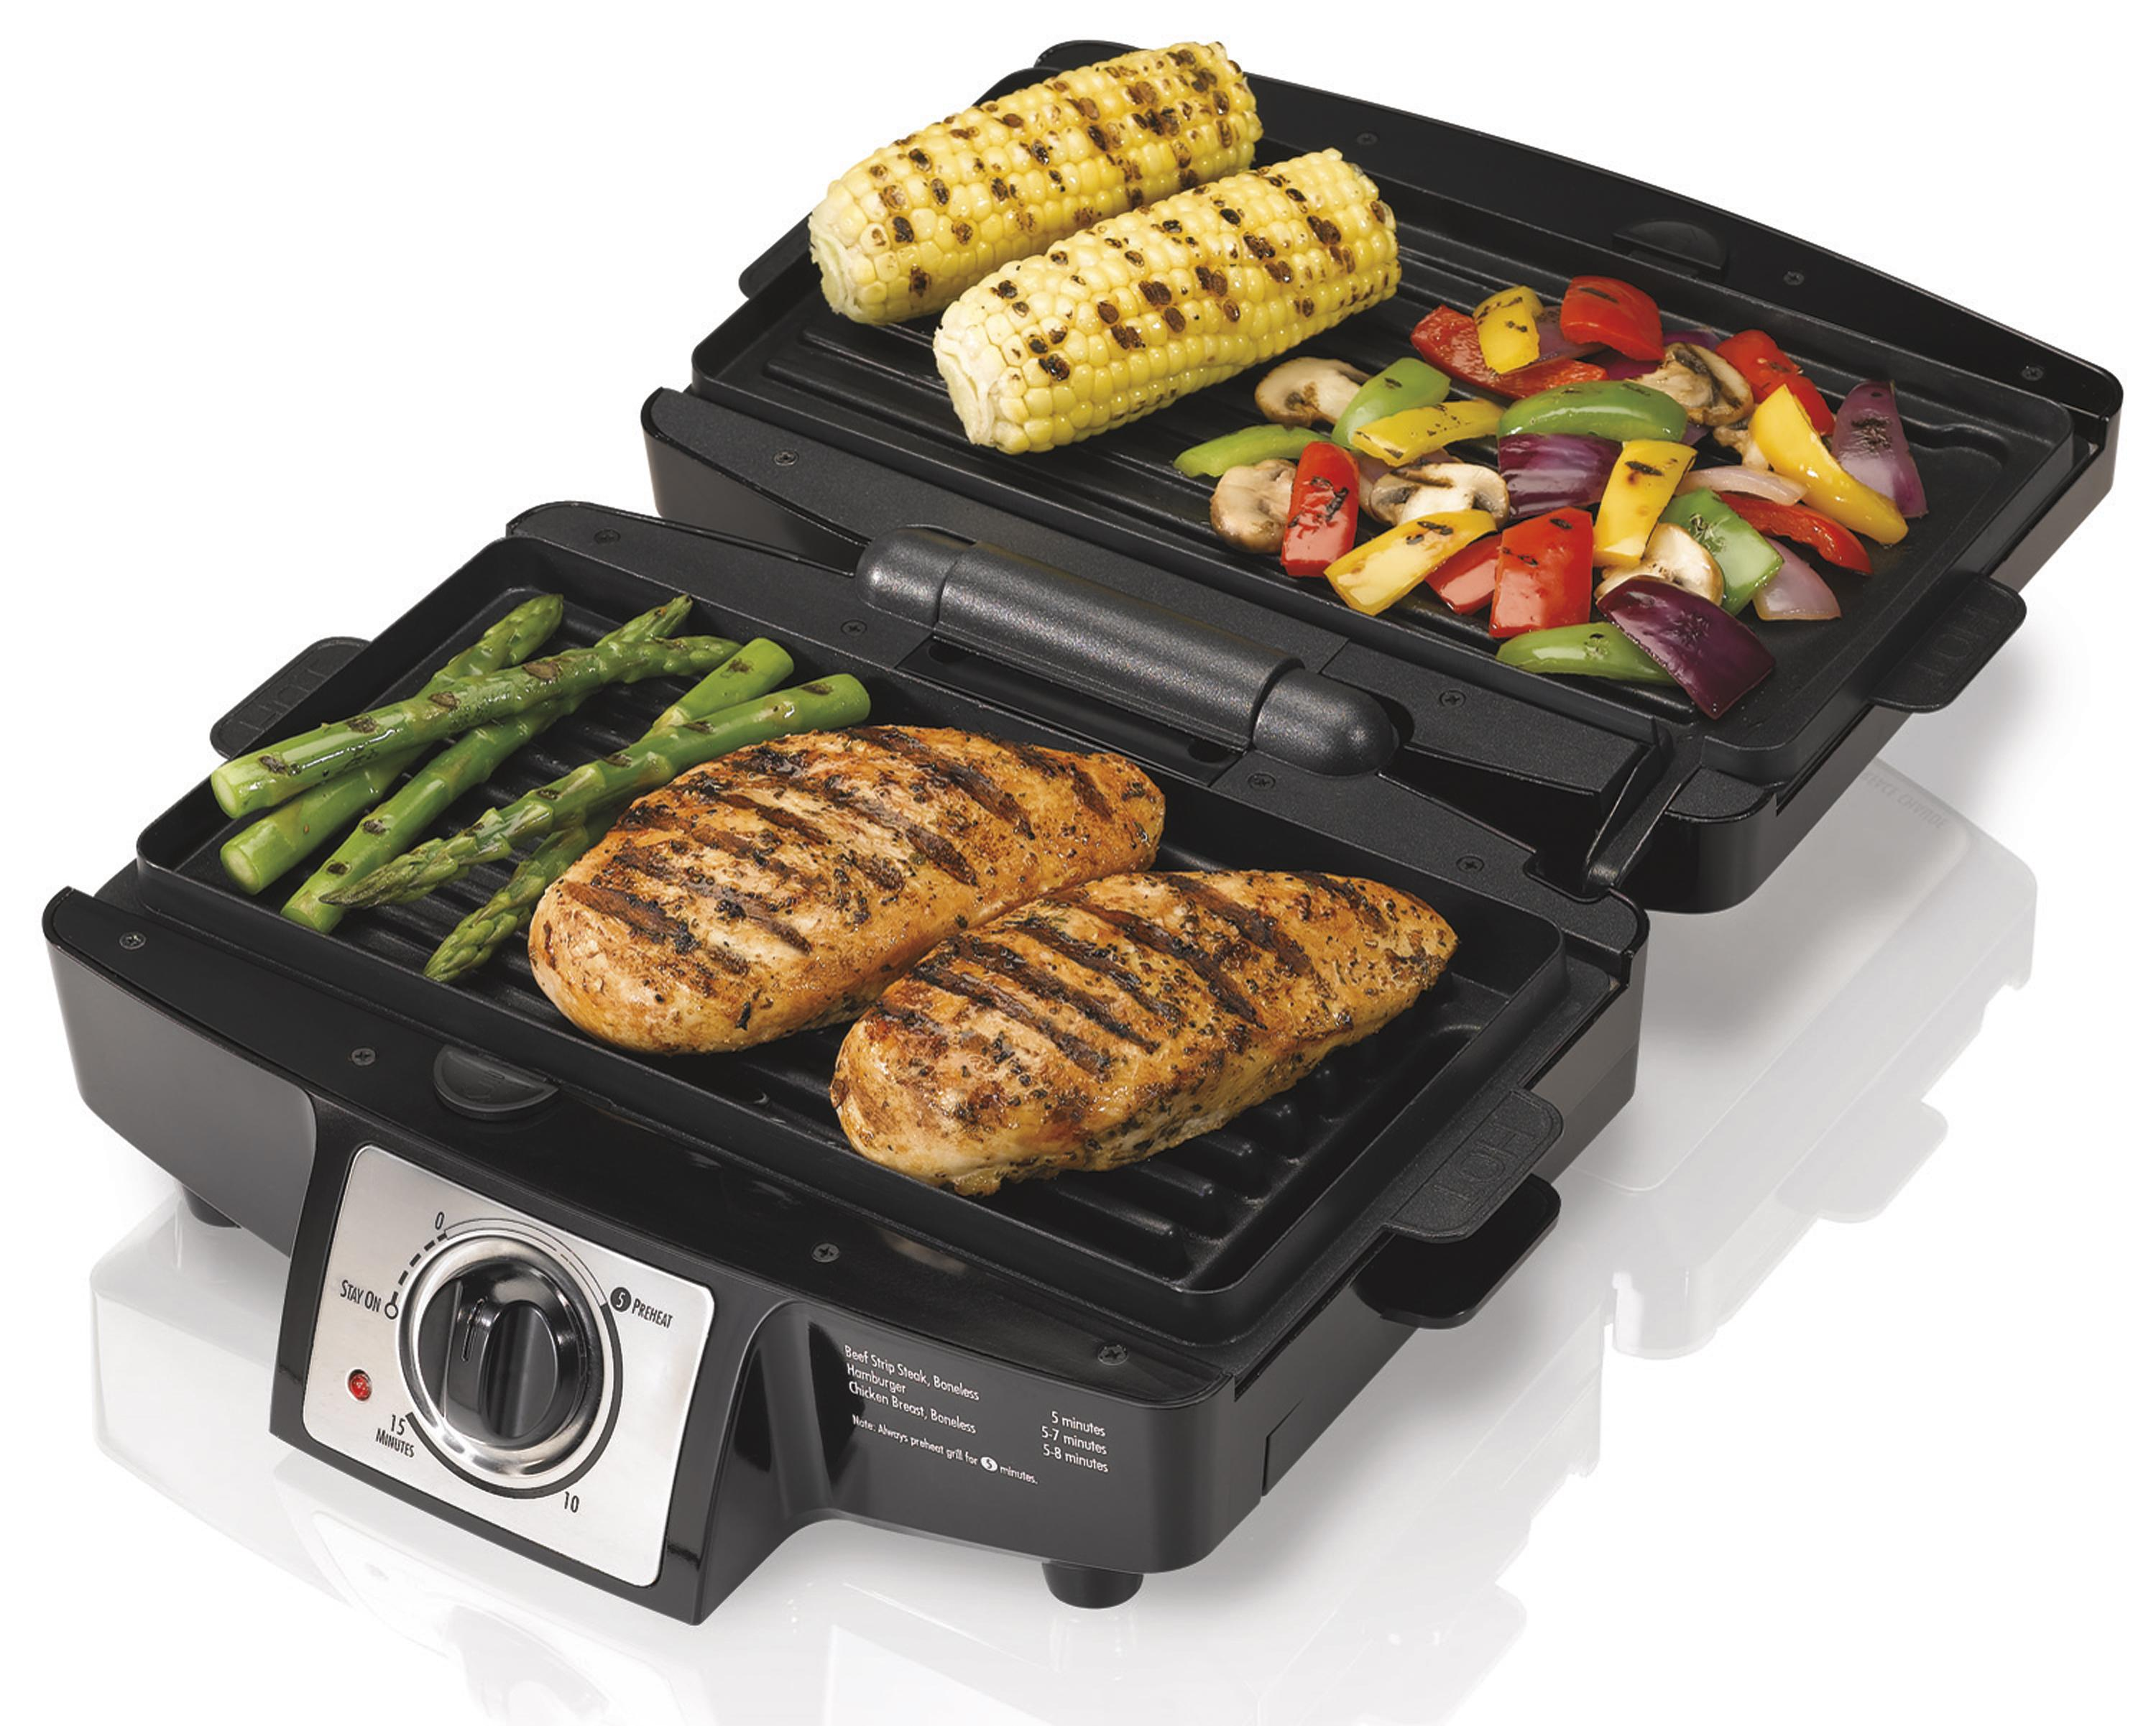 Amazon.com: Hamilton Beach 25332 Easy-Clean Indoor Grill: Electric